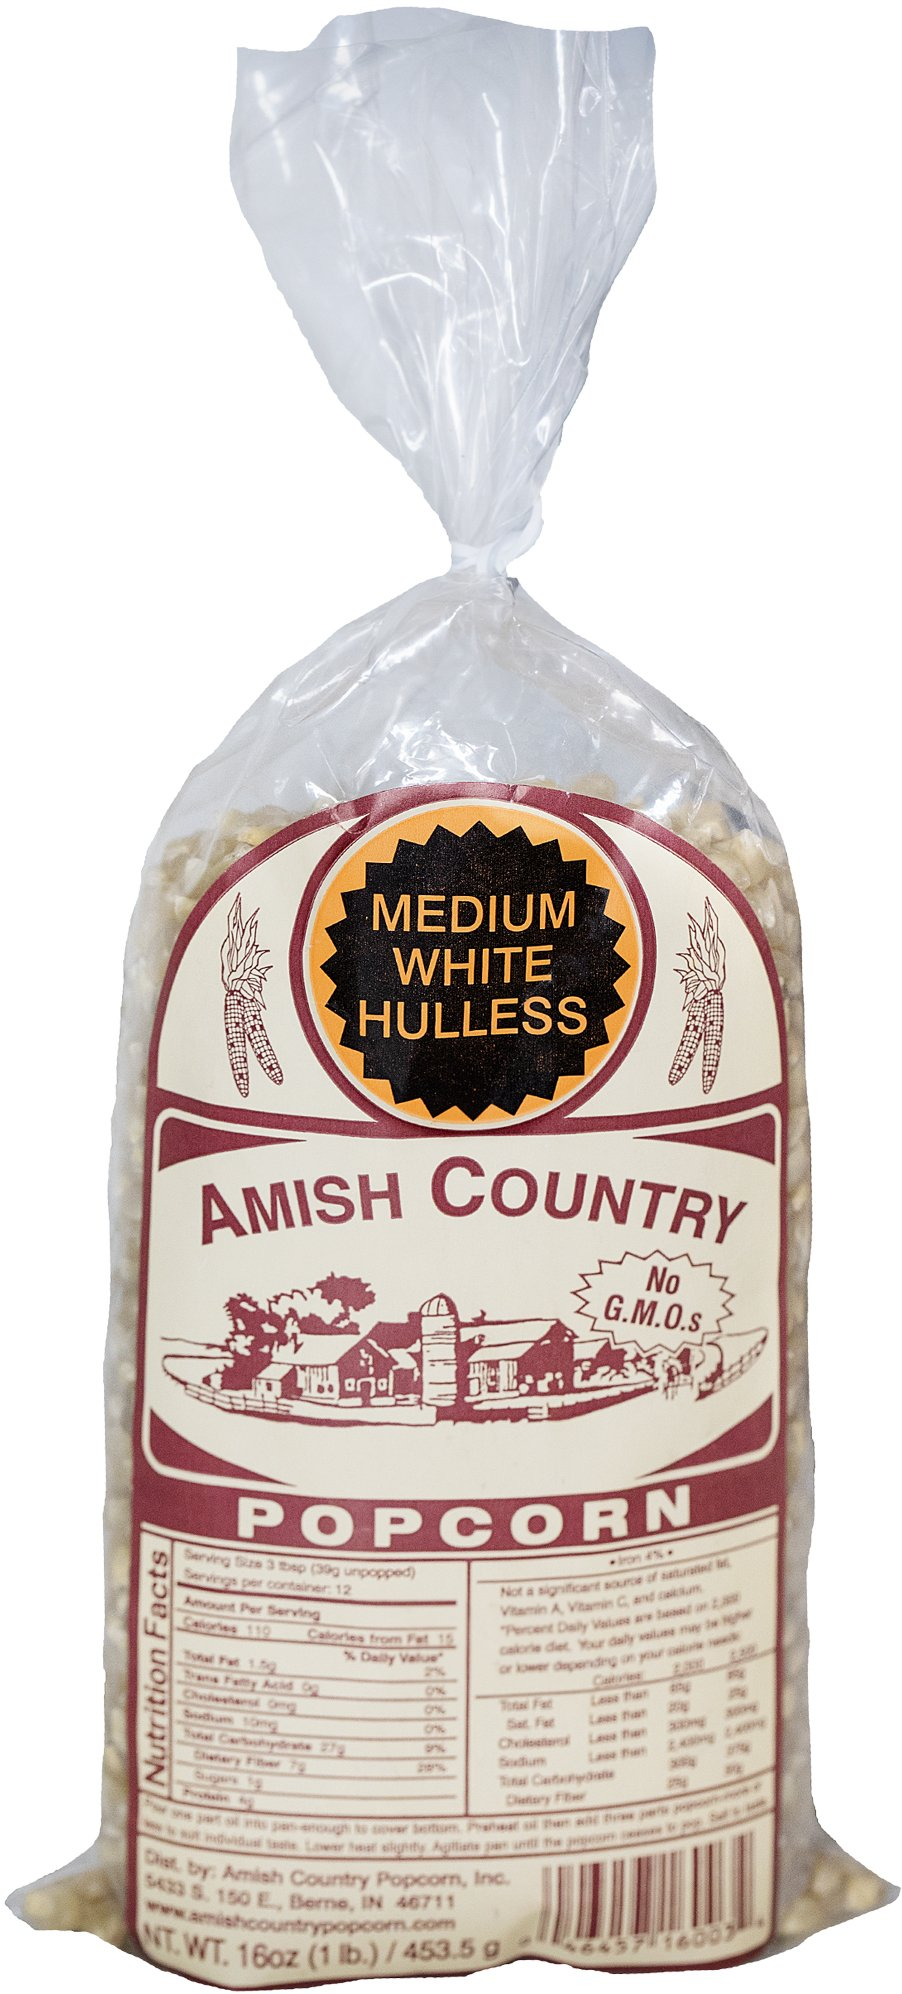 Amish Country Popcorn - Medium White Popcorn (1 Pound Bag) - Old Fashioned, Non GMO, Gluten Free, Microwaveable, Stovetop and Air Popper Friendly - Recipe Guide by Amish Country Popcorn (Image #1)